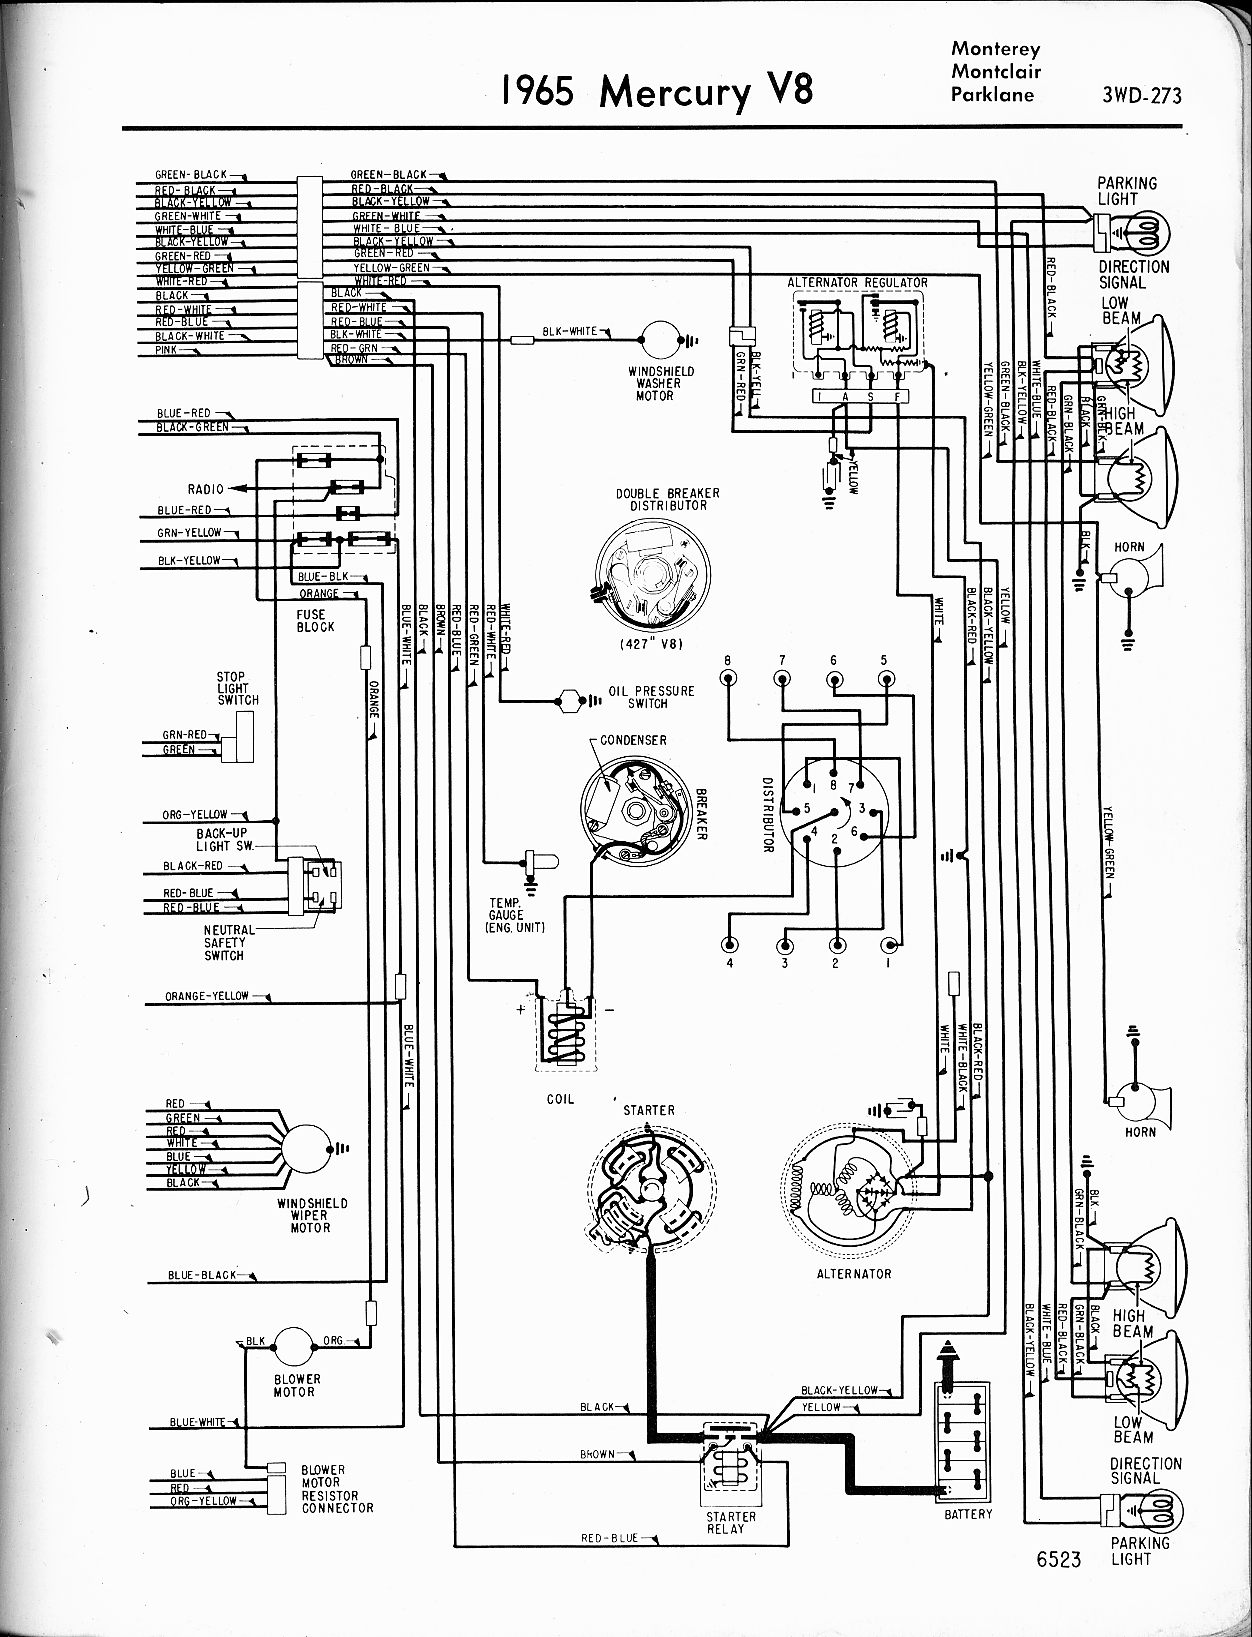 Mercury Wiring Diagrams The Old Car Manual Project 6 Volt Generator Diagram 1950 1965 V8 Monterey Montclair Parklane Left Page